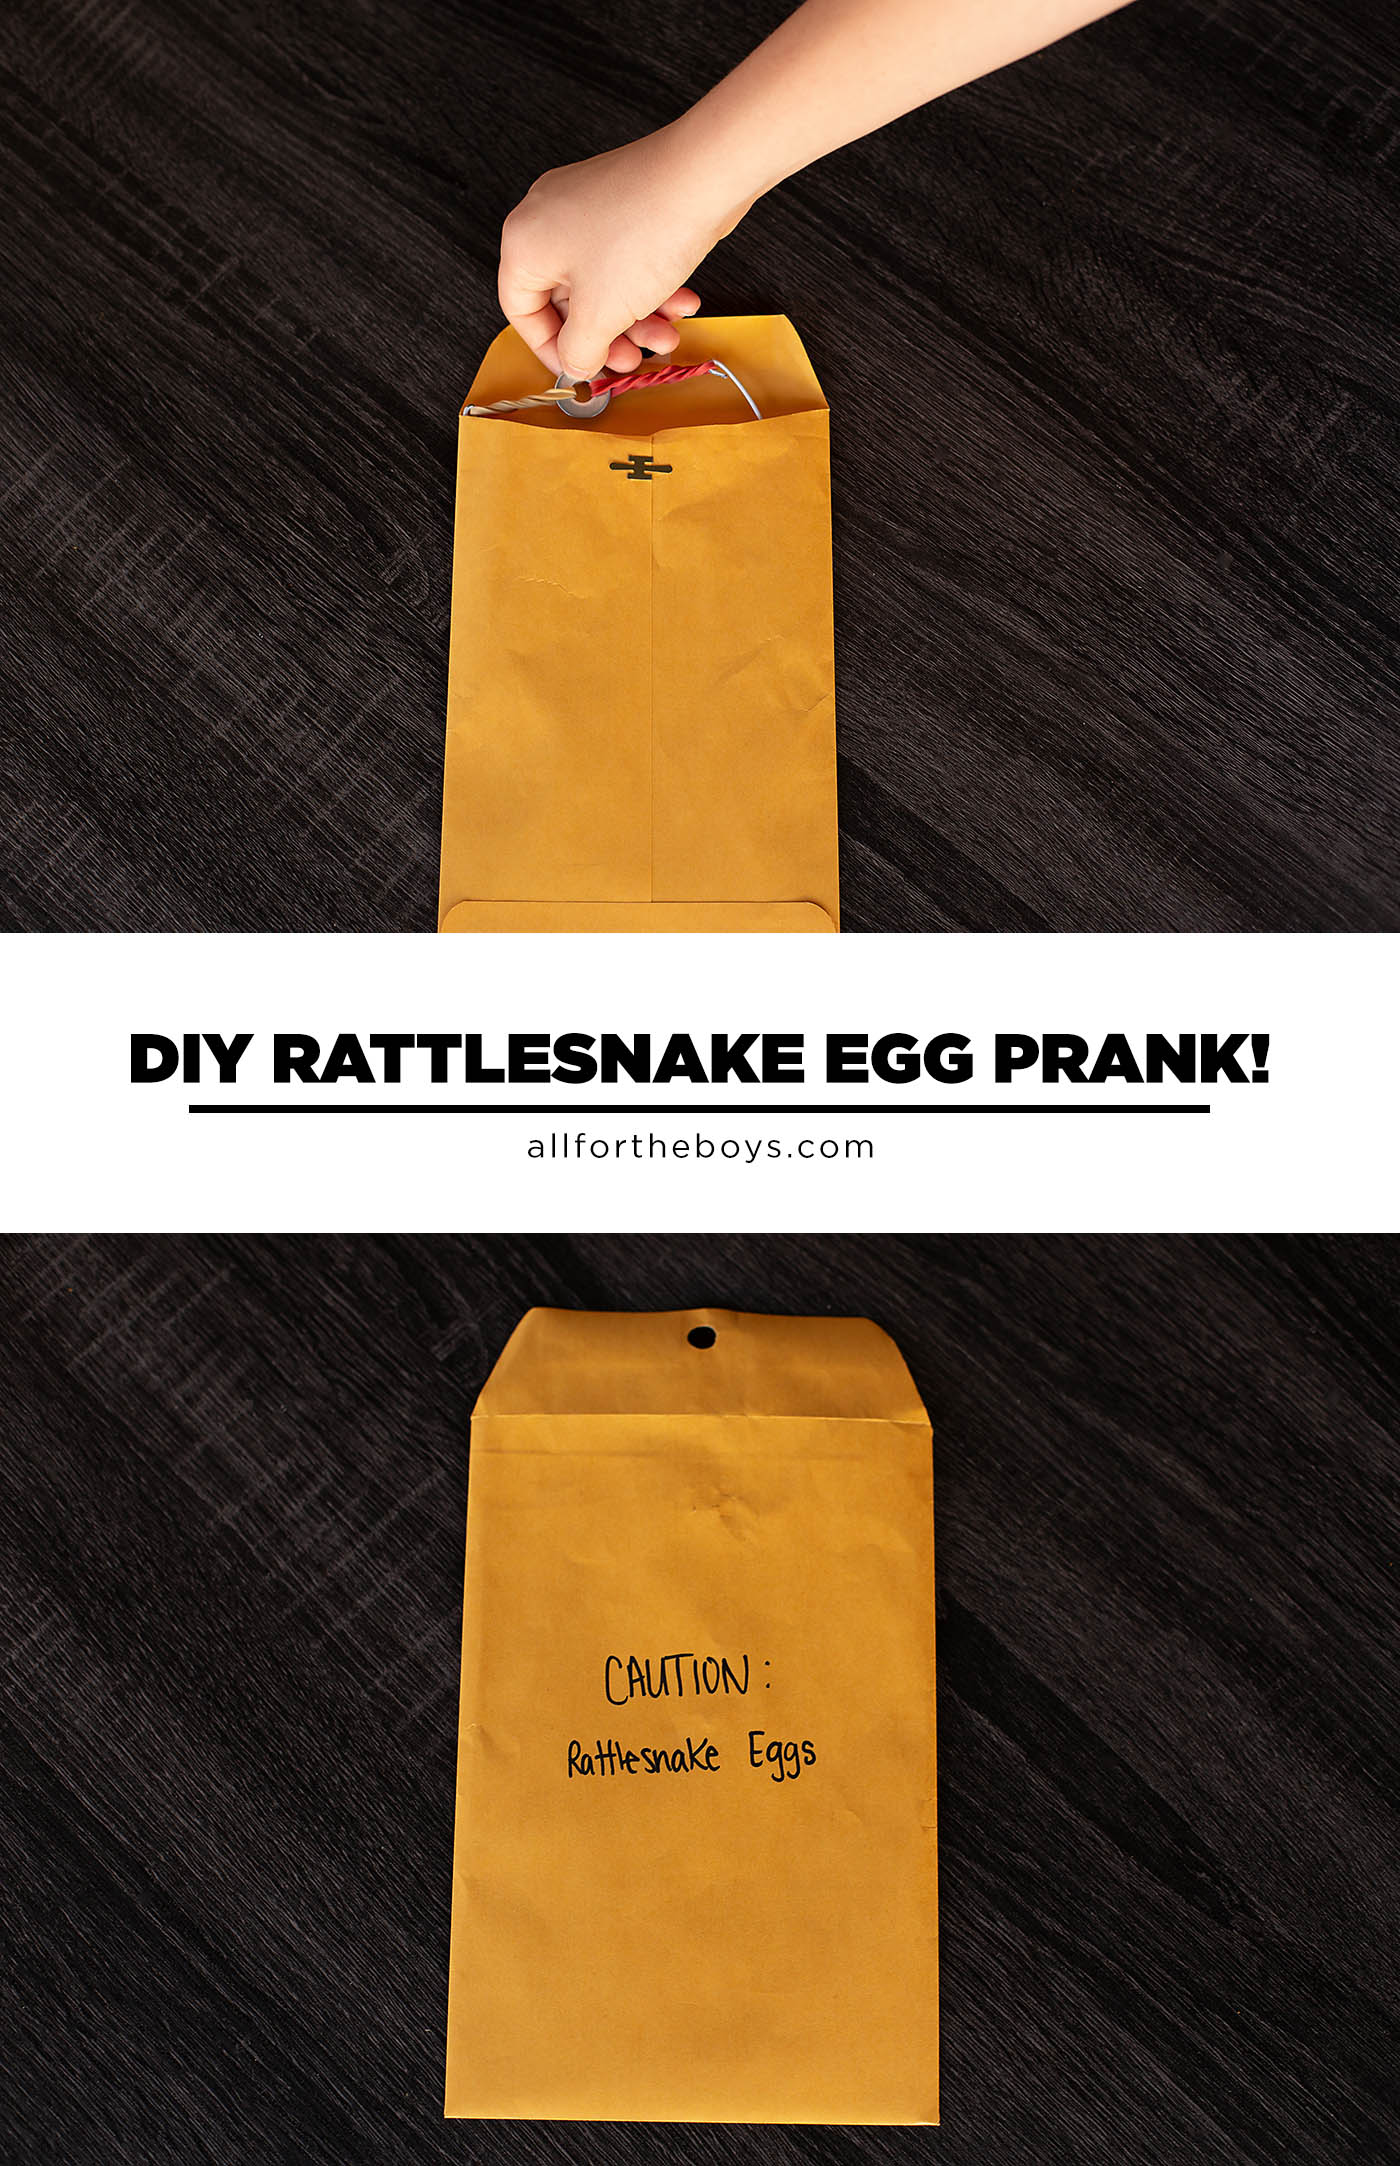 DIY Rattlesnake Egg Prank - fun DIY prank for tweens and teens!